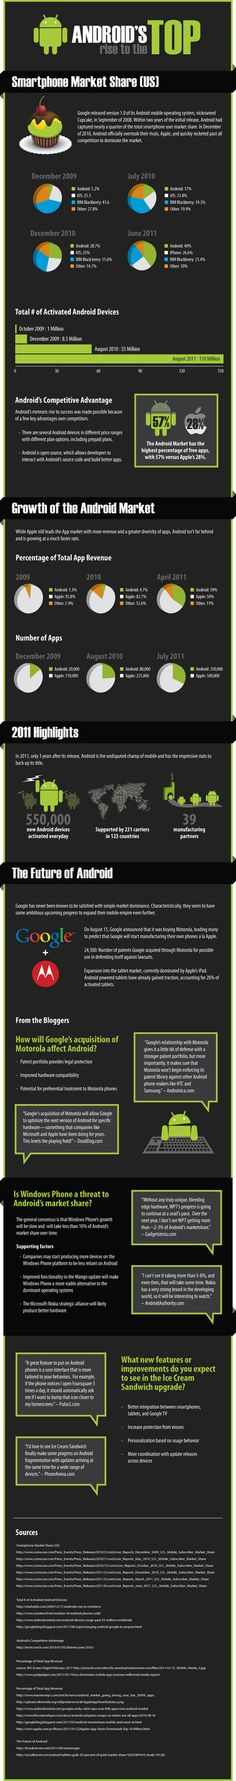 Android's rise to the top